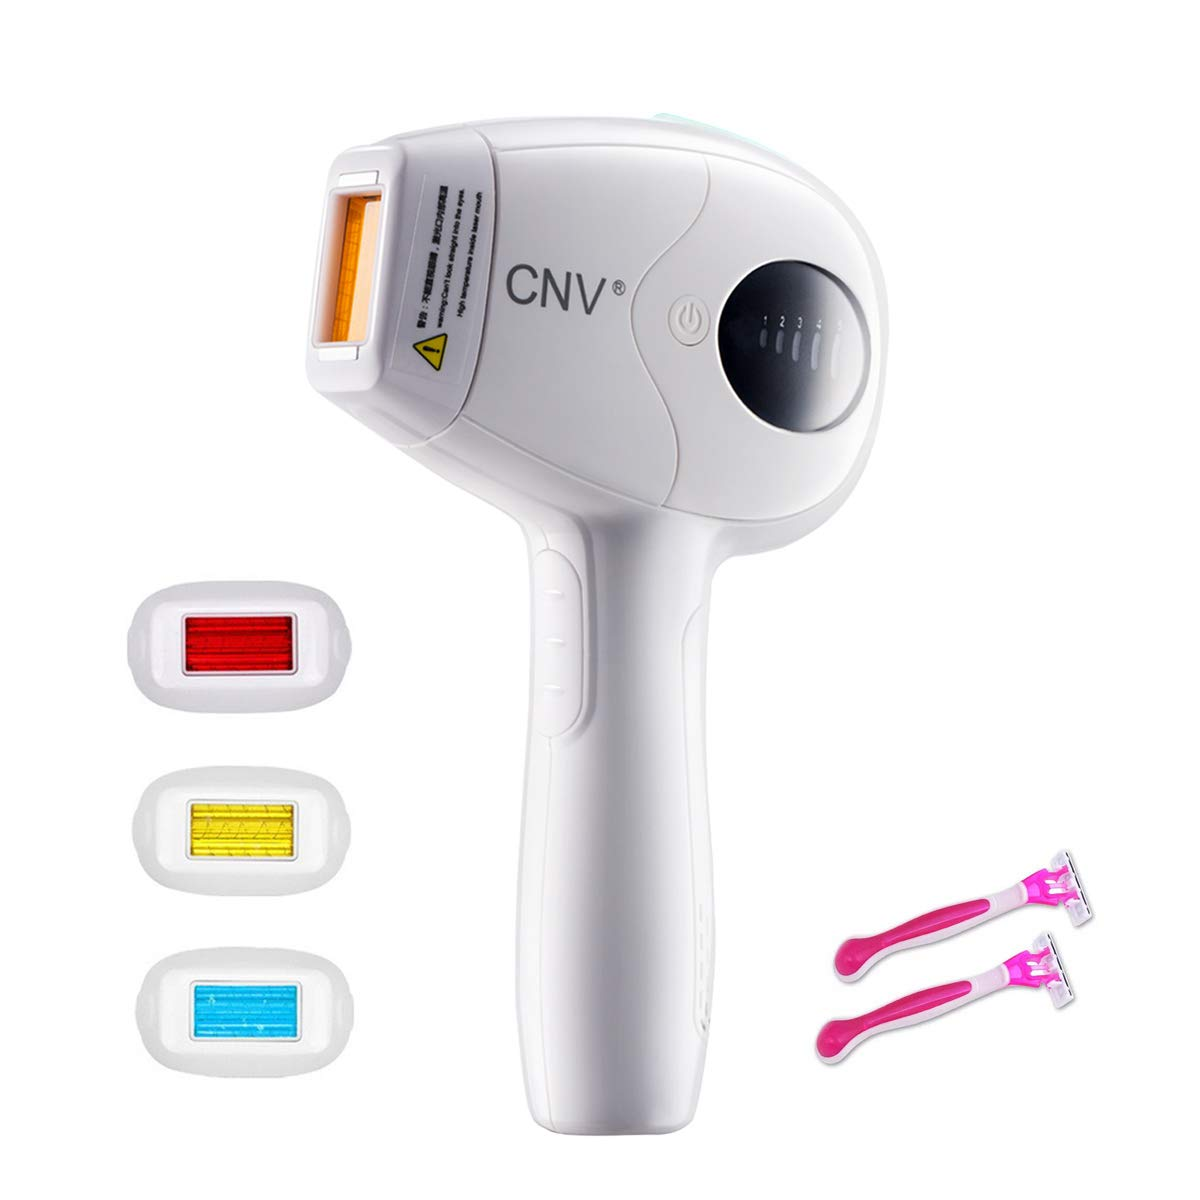 New Permanent Hair Removal New WPL Device for Women And Men Whole Body Home Use (Hair Removal laser Machine) CNVINC